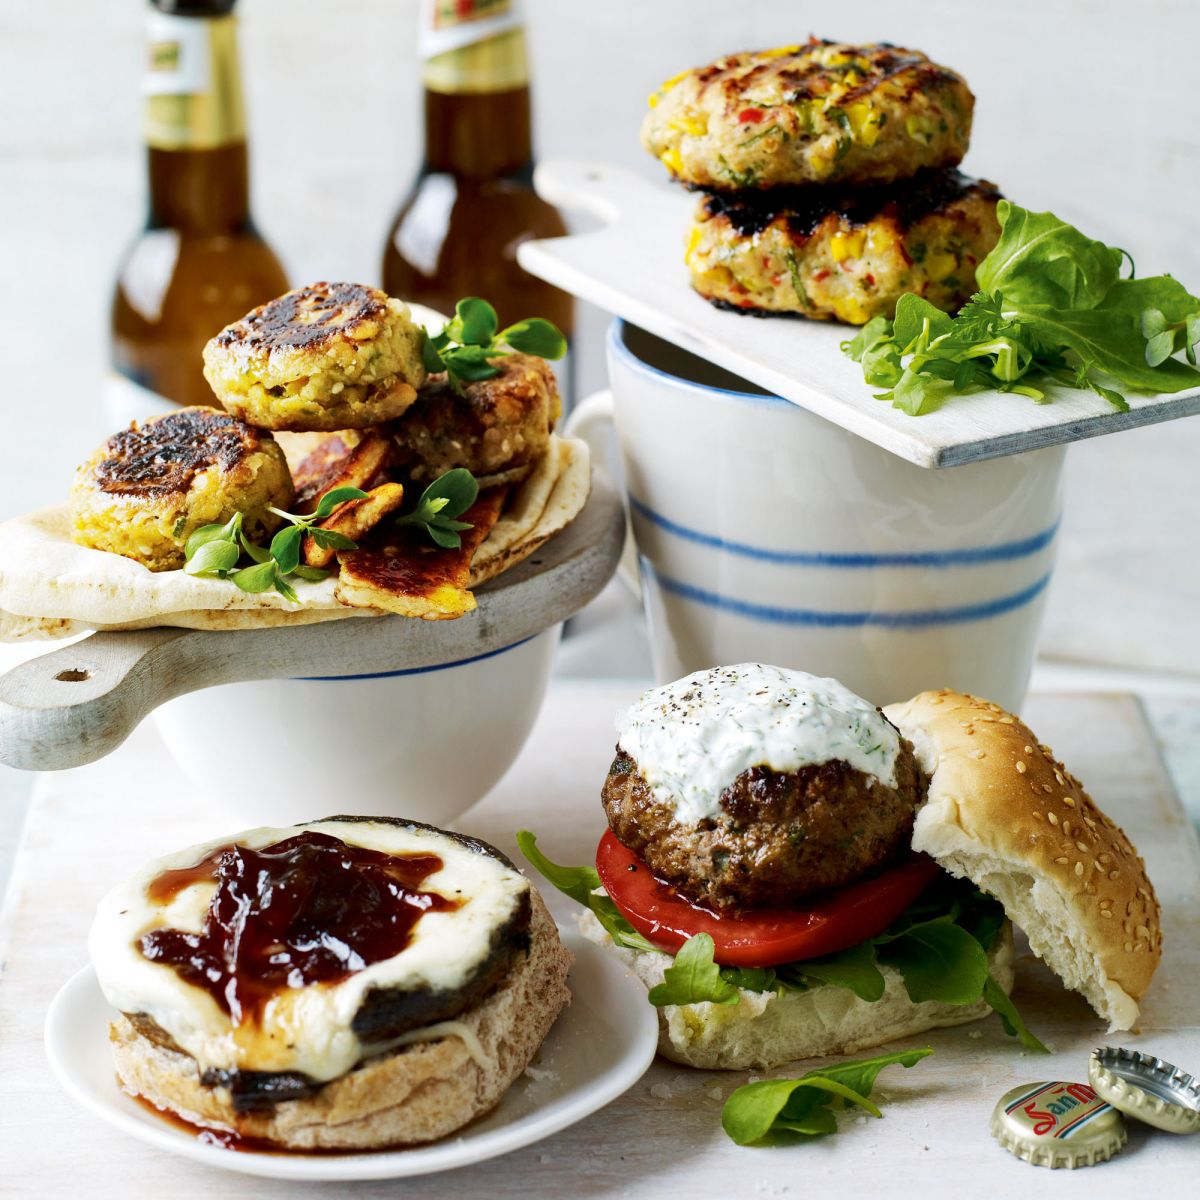 These Middle Eastern lamb burgers are a perfect change to an Easter main course